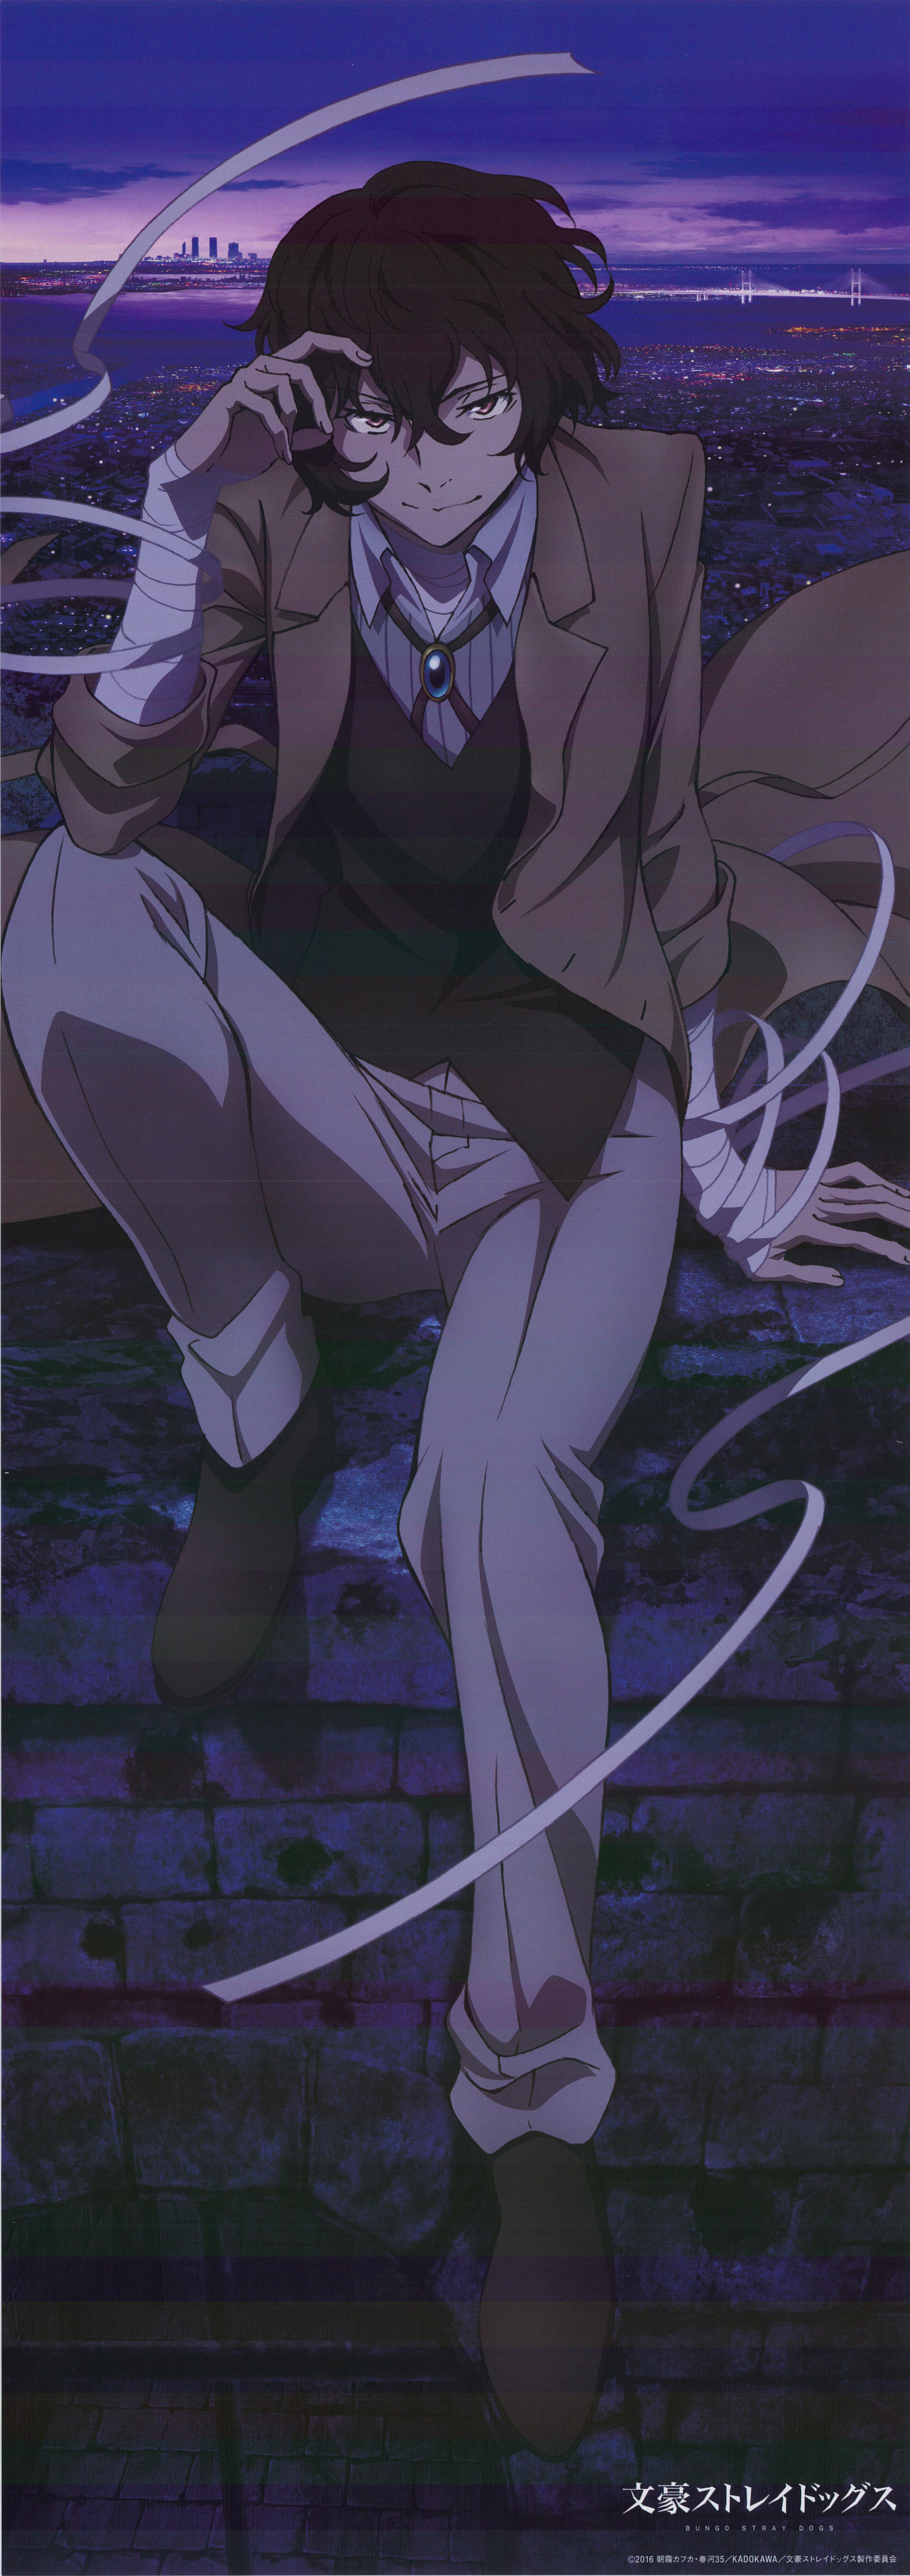 Bungo Stray Dogs Wallpaper Posted By Ethan Cunningham